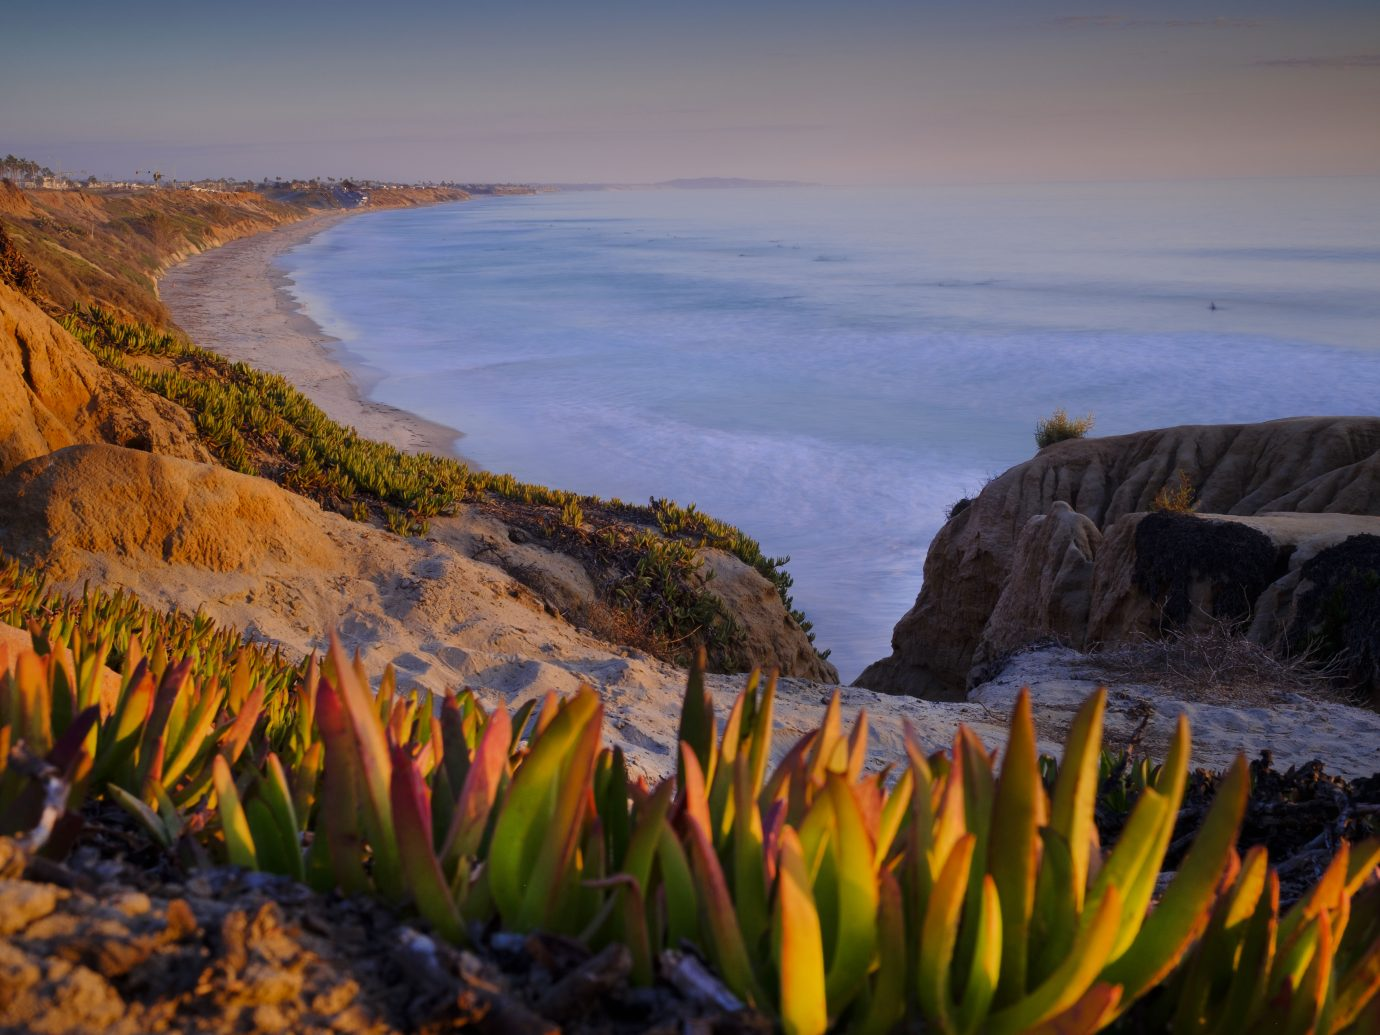 Looking South down the North County San Diego Coast from Carlsbad to Encinitas California